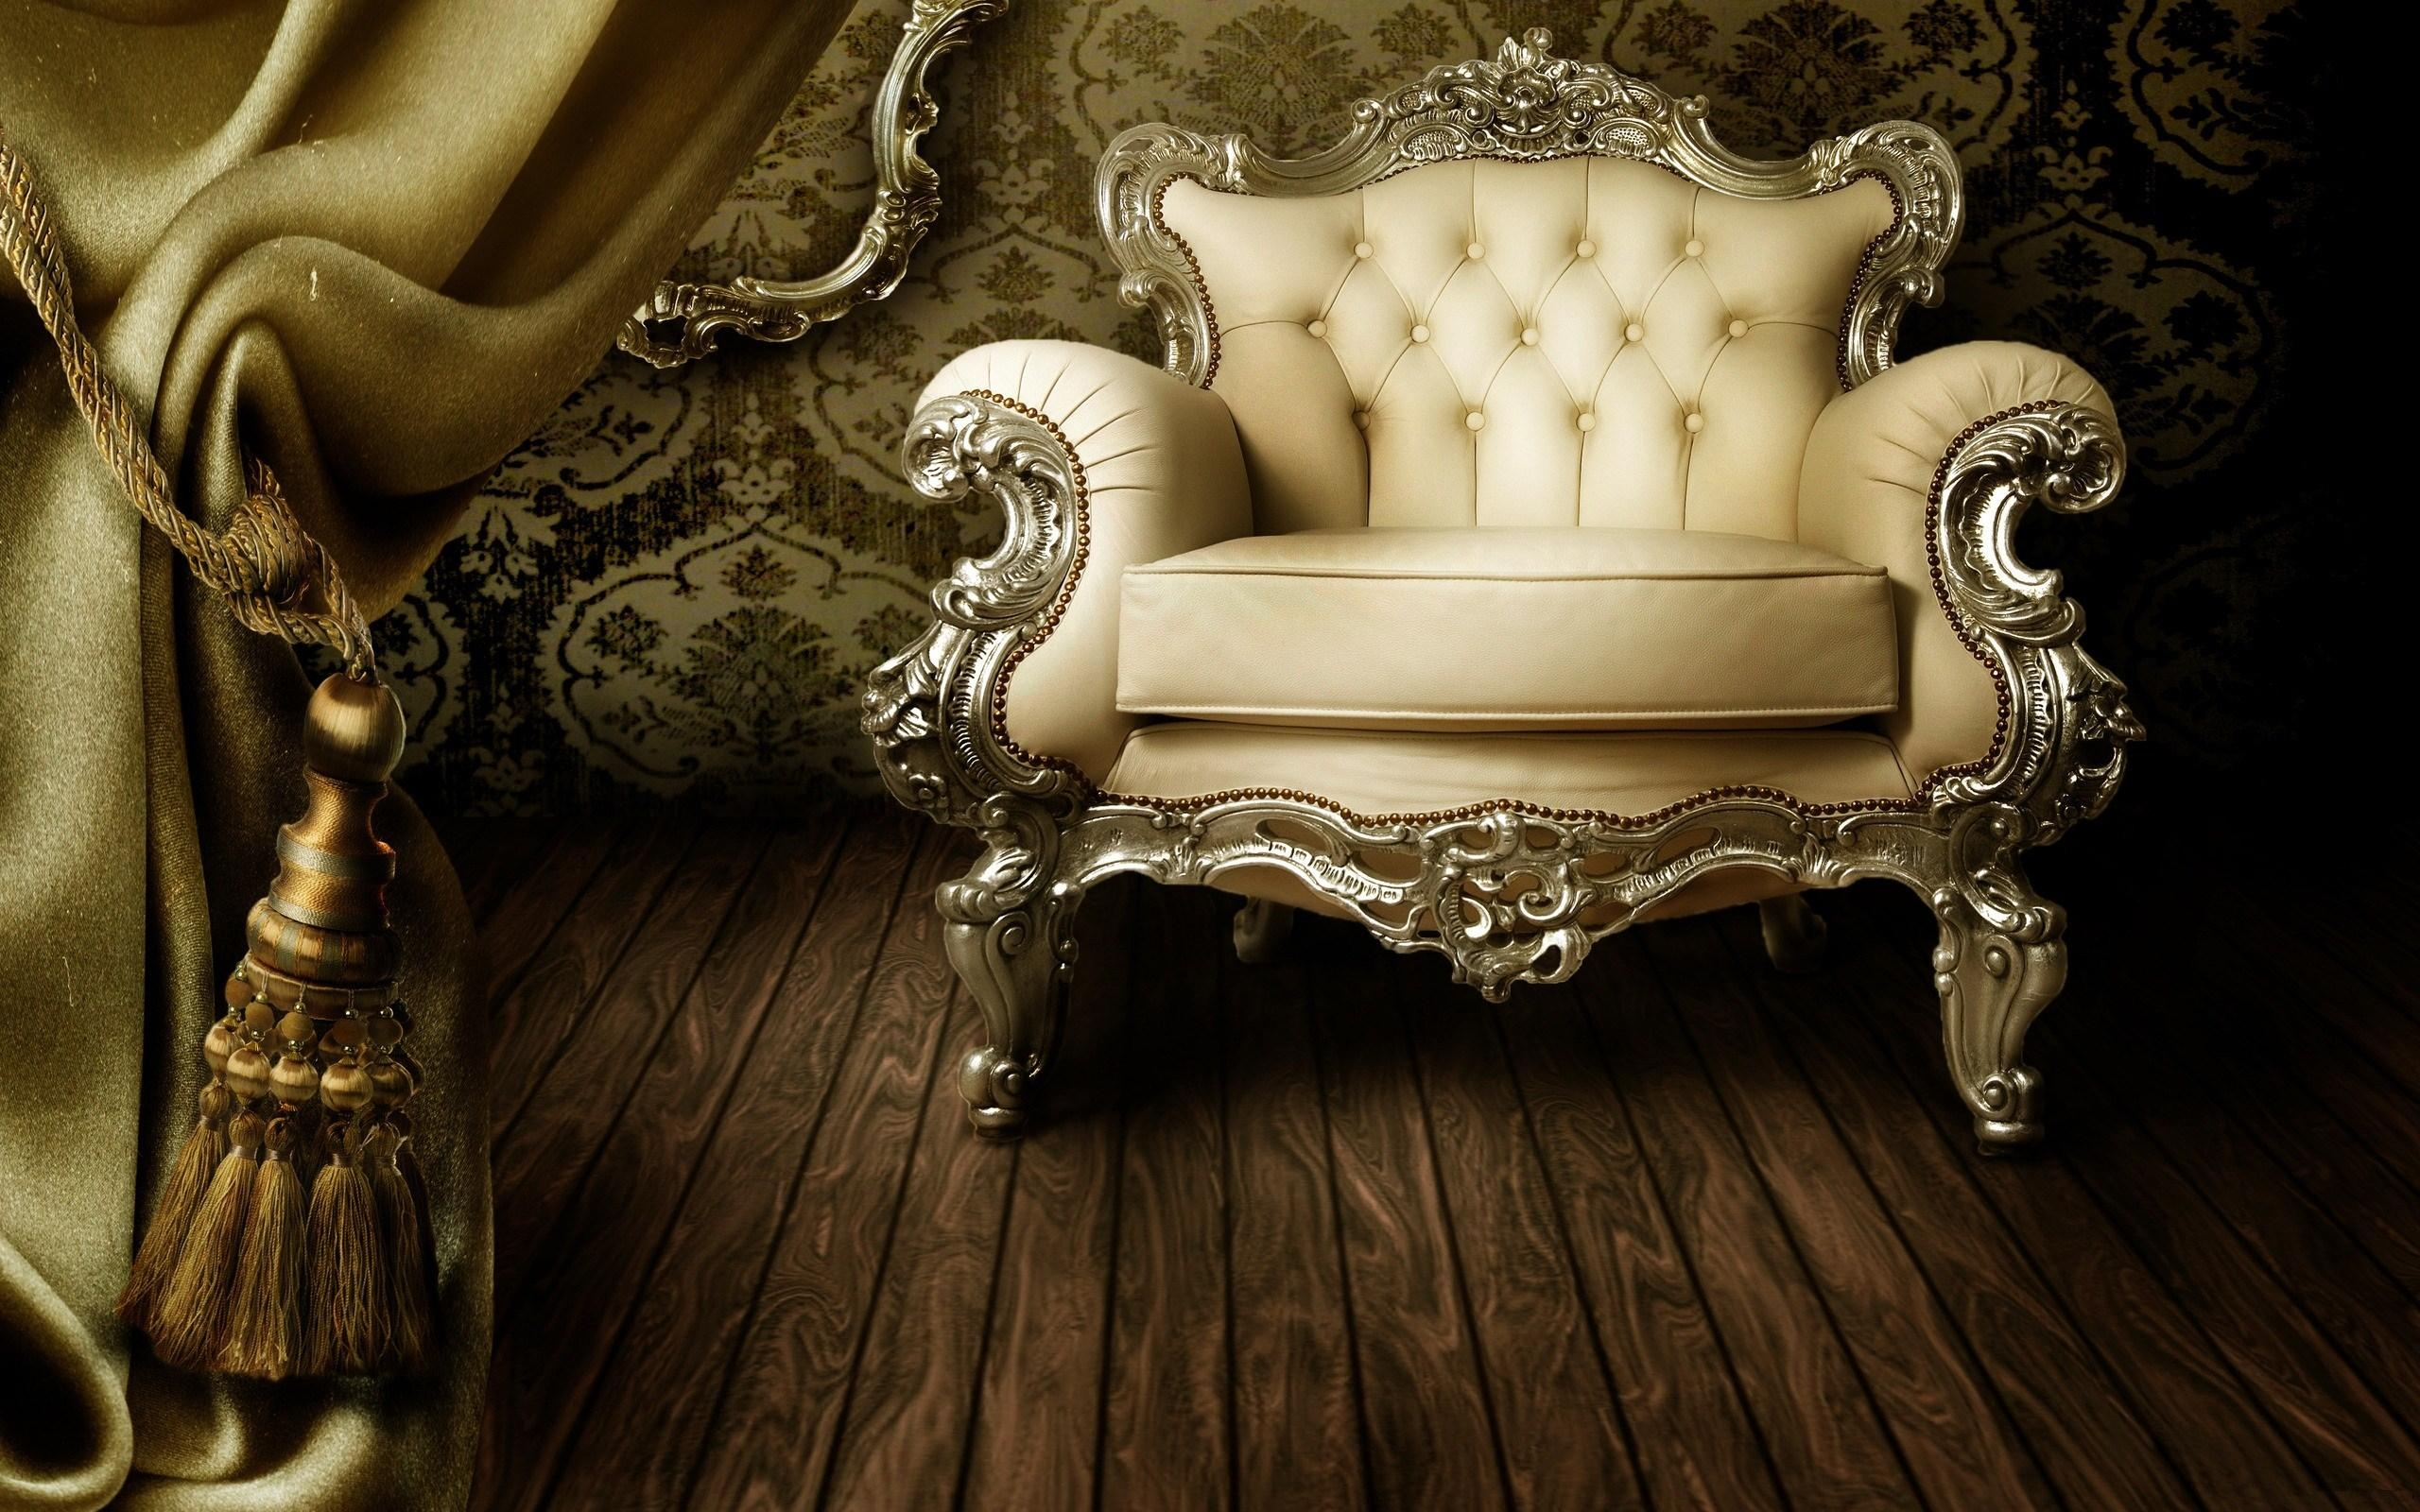 Interior, Retro, Vintage, Classic, Chair, Sofa, Curtain, Floor pertaining to Retro Sofas and Chairs